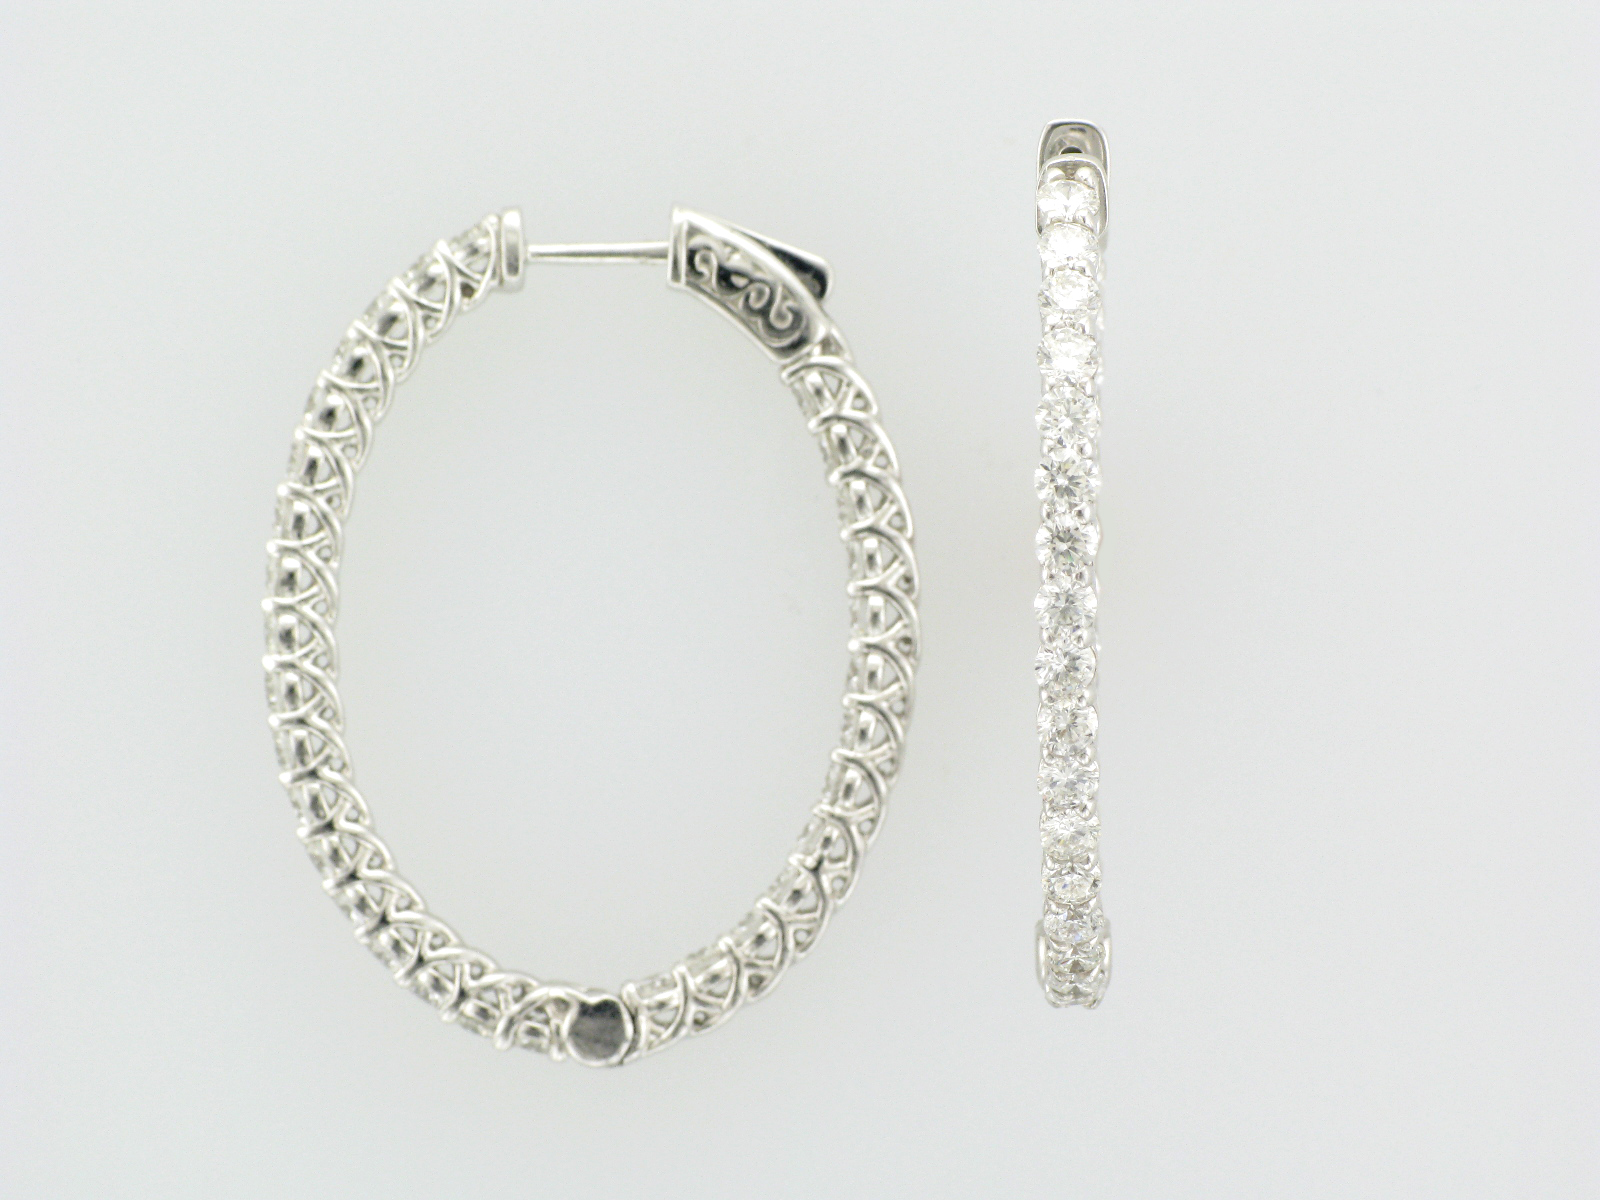 4.5 Carat Diamond Hoops